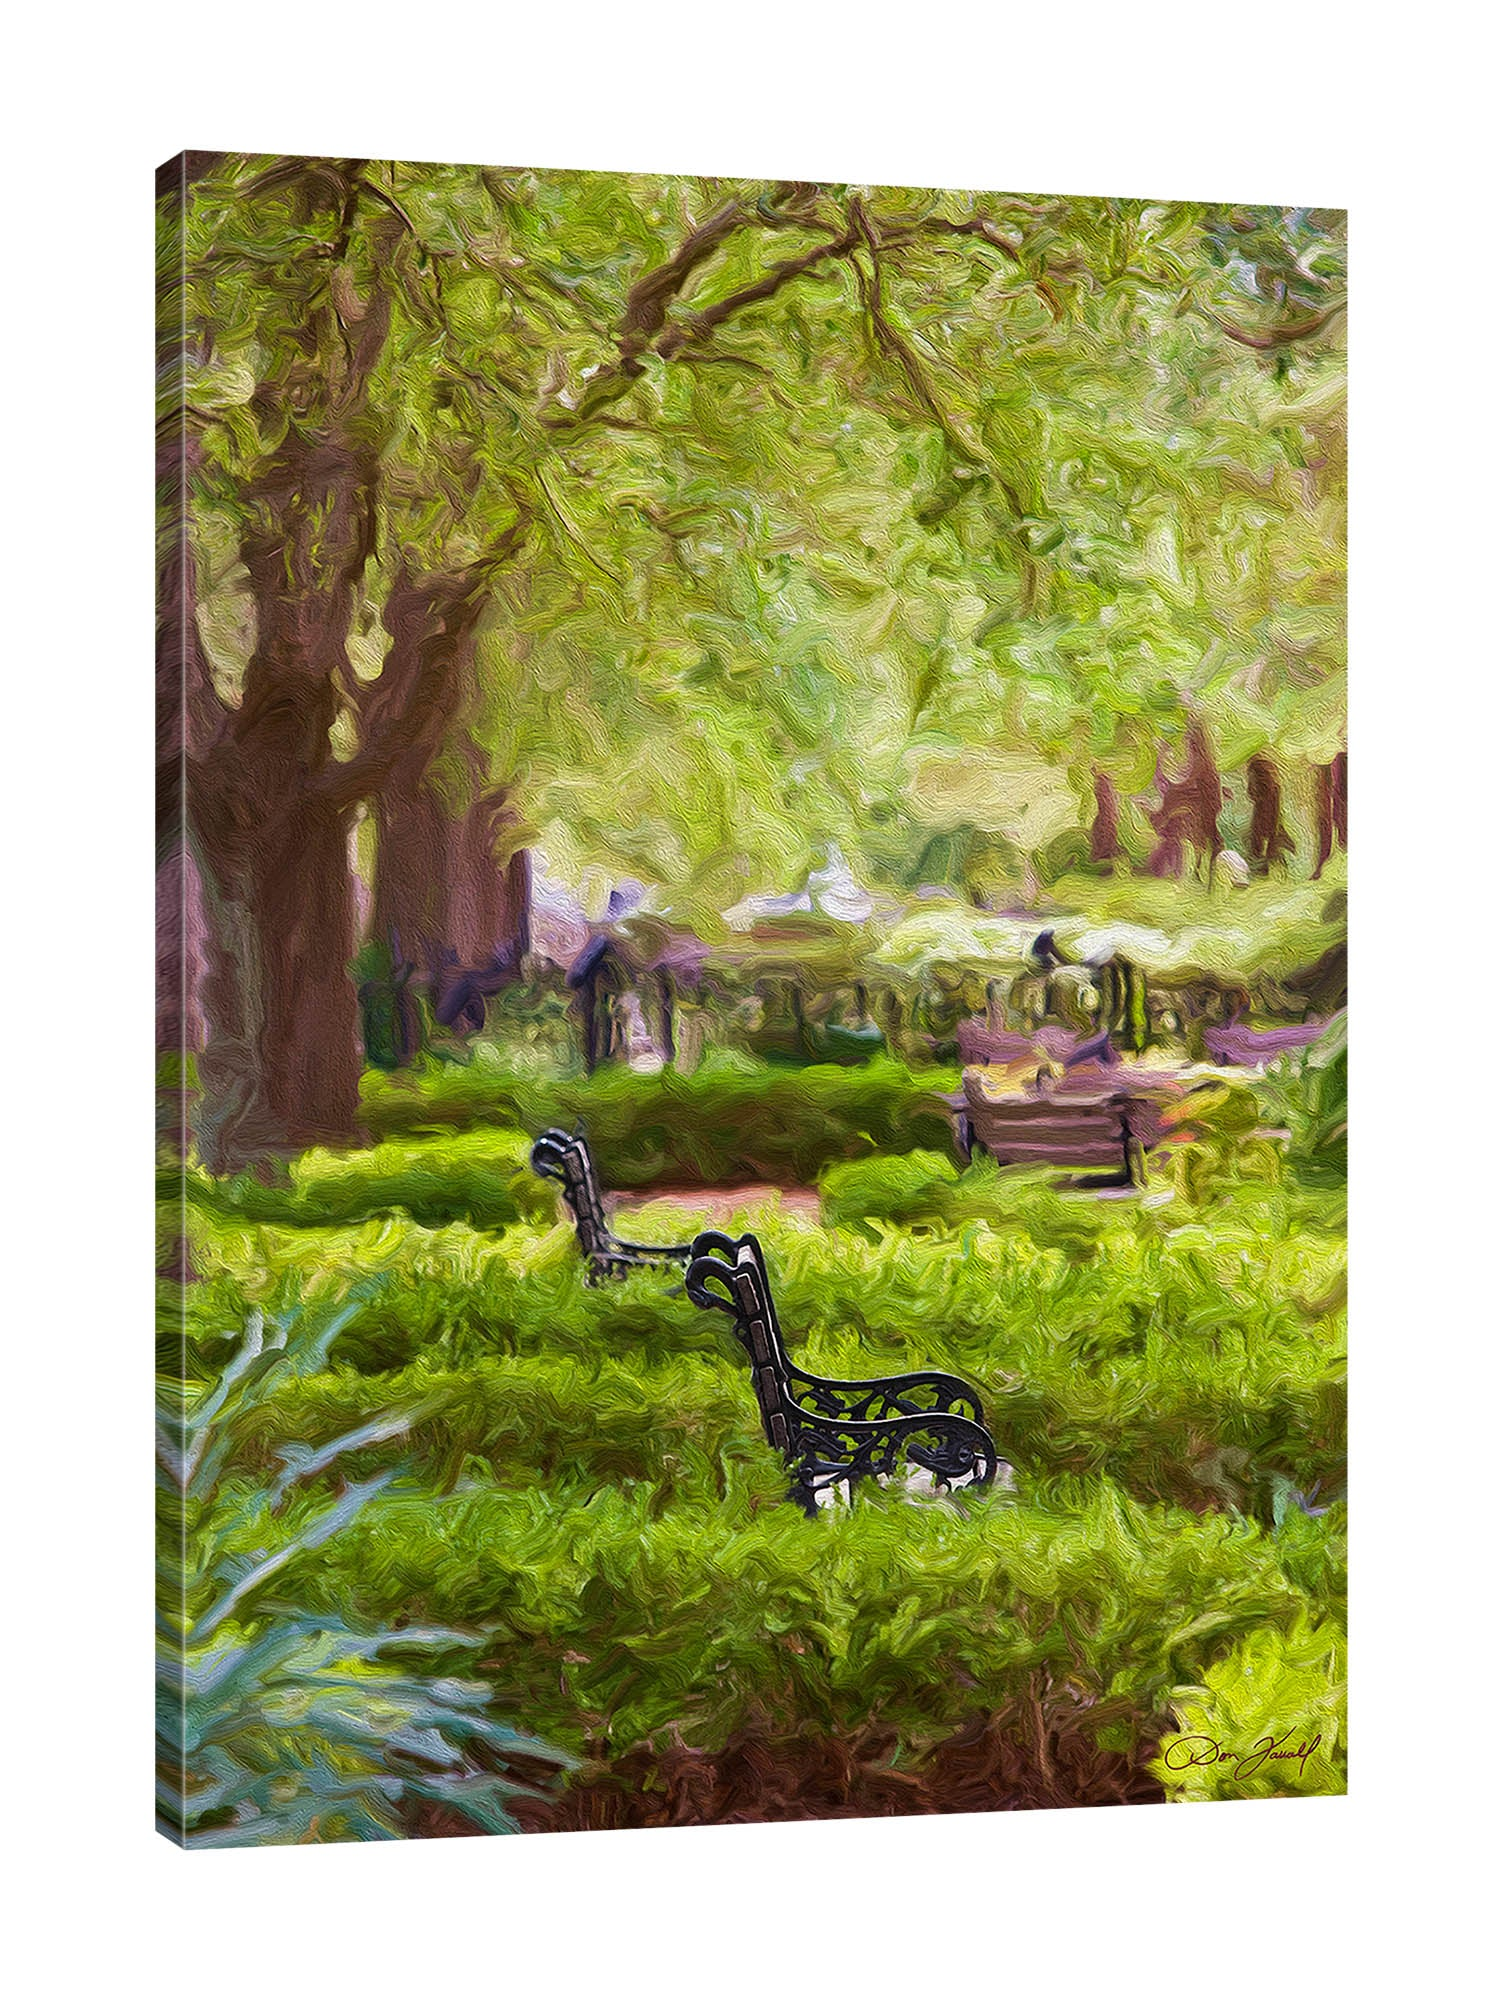 Don-Farrall,Modern & Contemporary,Landscape & Nature,trees,tree,chairs,bench,grass,landscape,swirls,Red,Charcoal Gray,Gray,Blue,Jade Blue